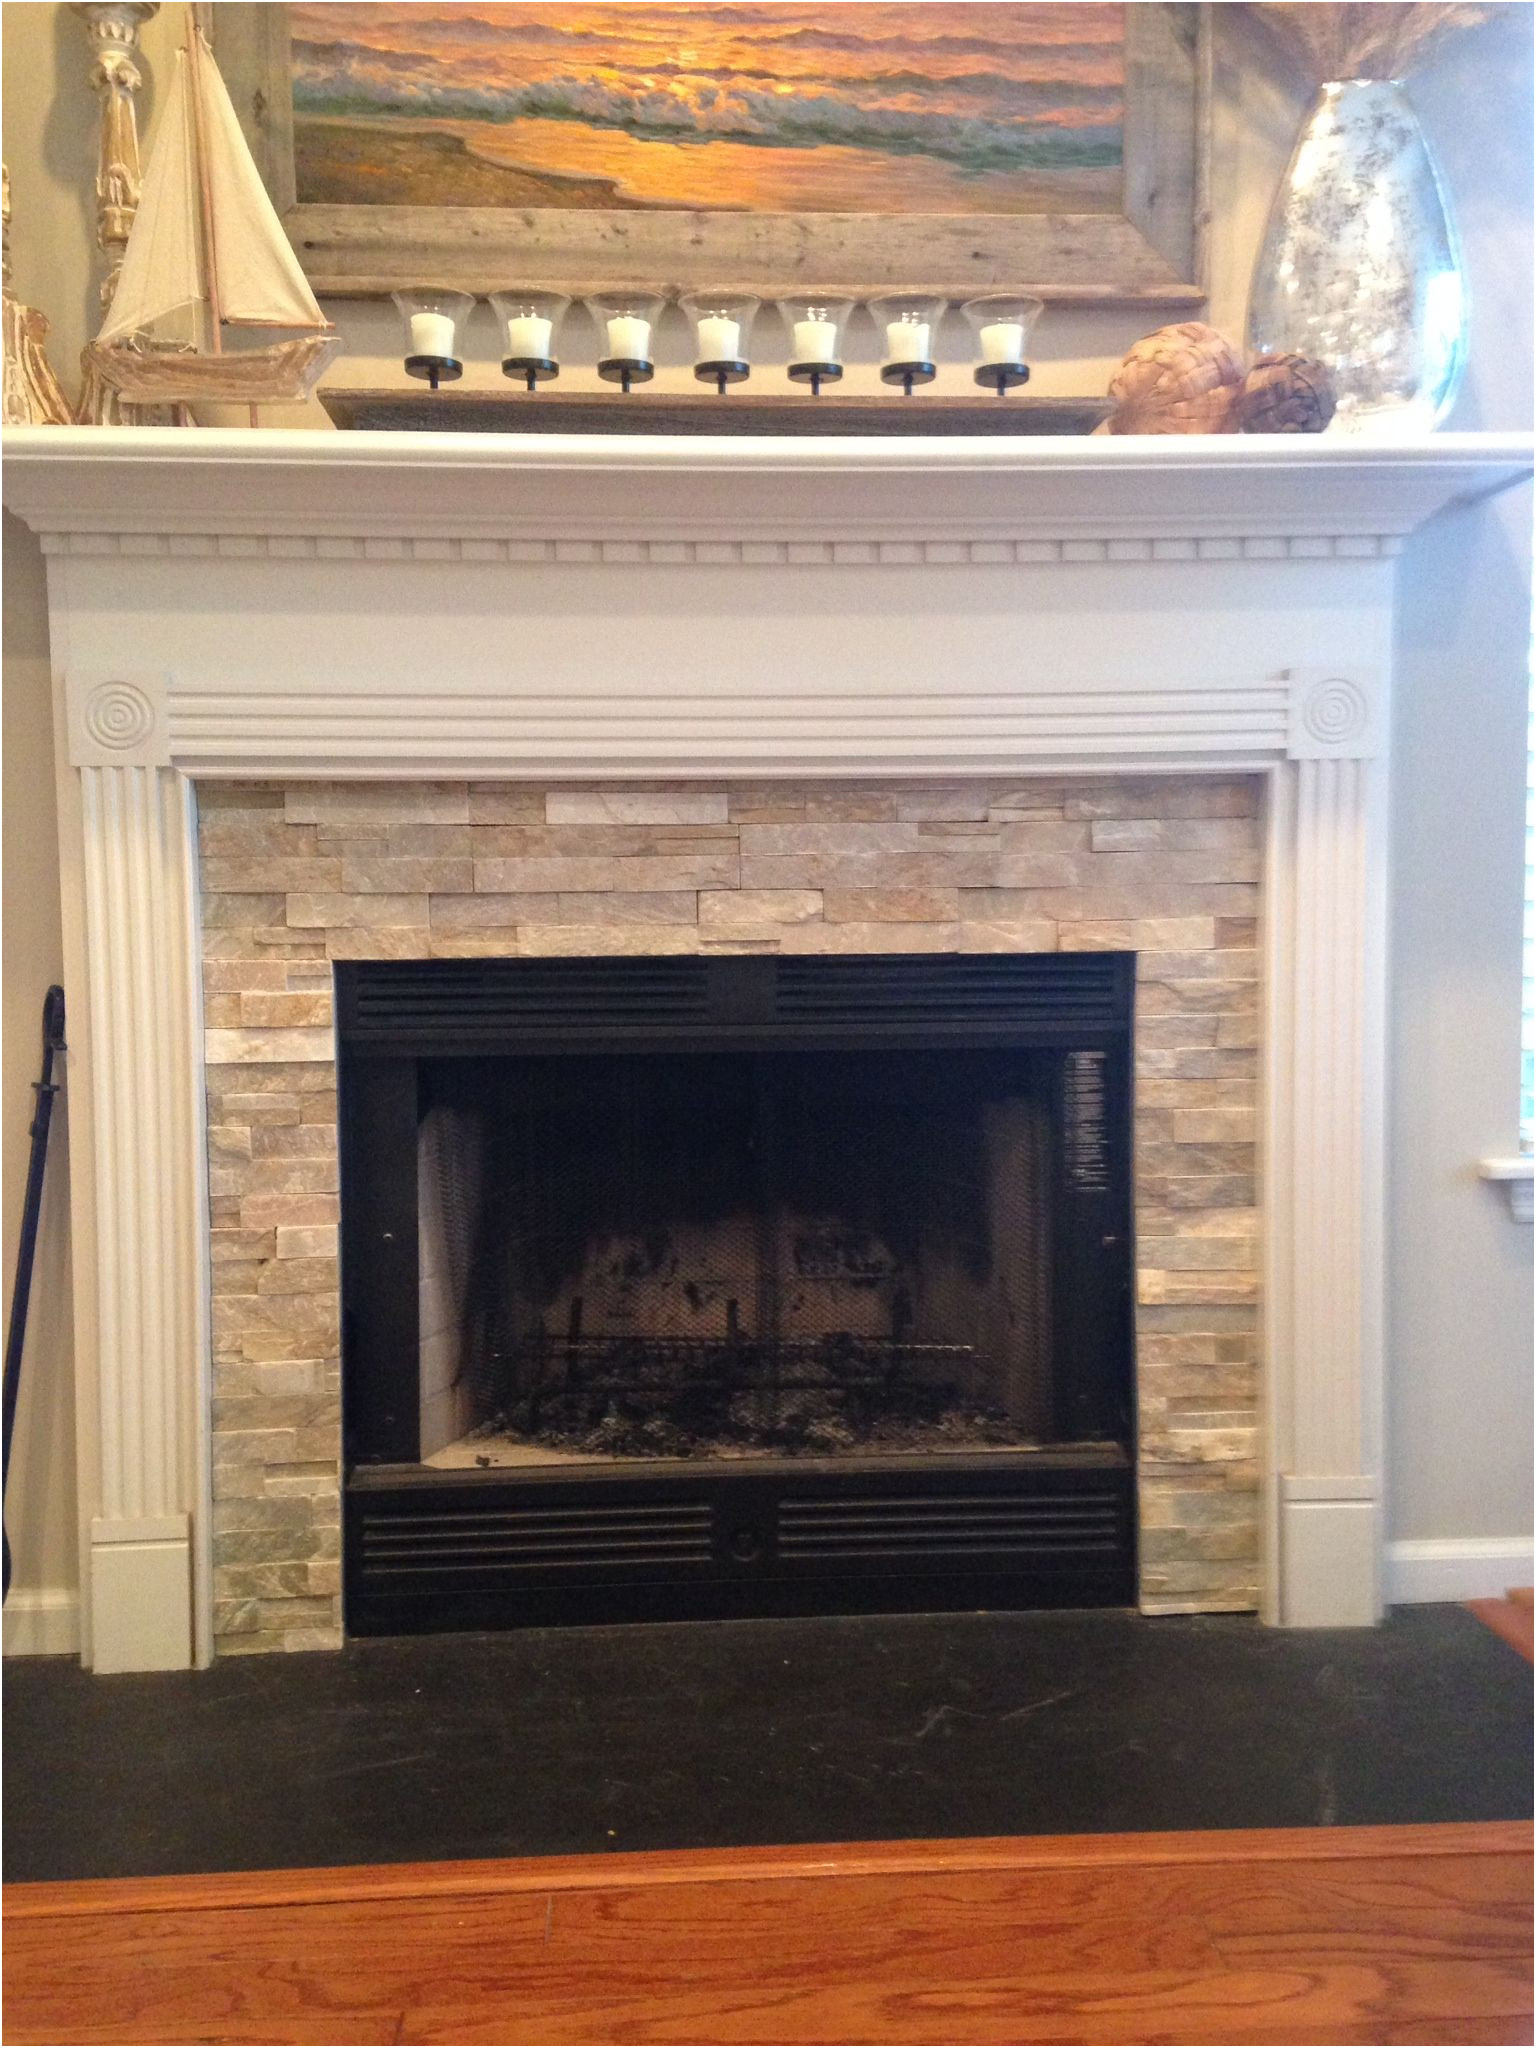 Fireplace Mantels Designs Lovely Fireplace Idea Mantel Wainscoting Design Craftsman